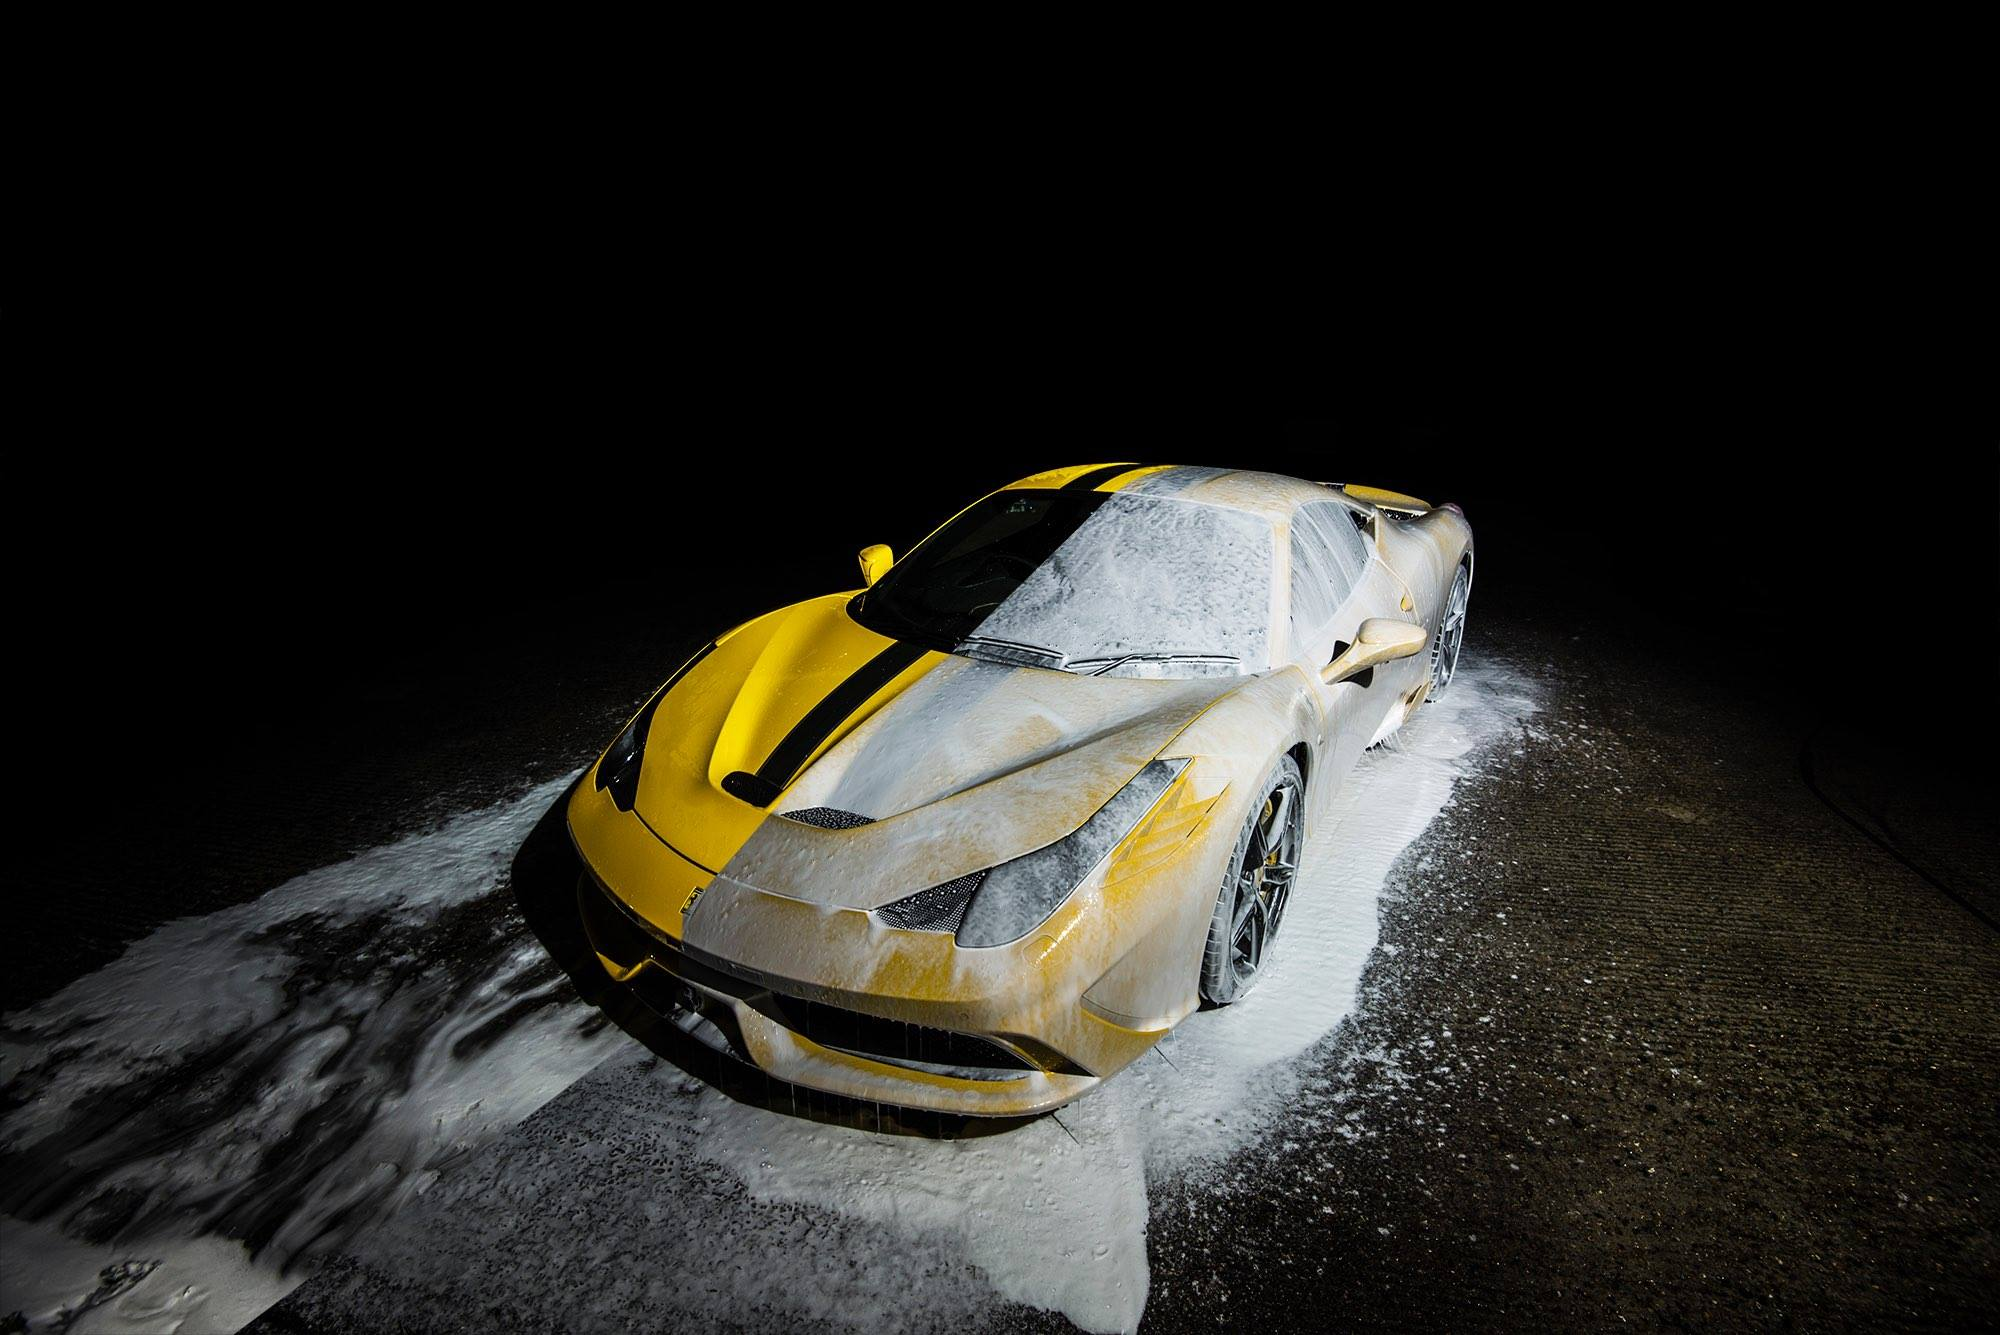 Ferrari 458 Italia For Sale >> Washing the LaFerrari and Ferrari 458 Speciale Is Sexy - autoevolution